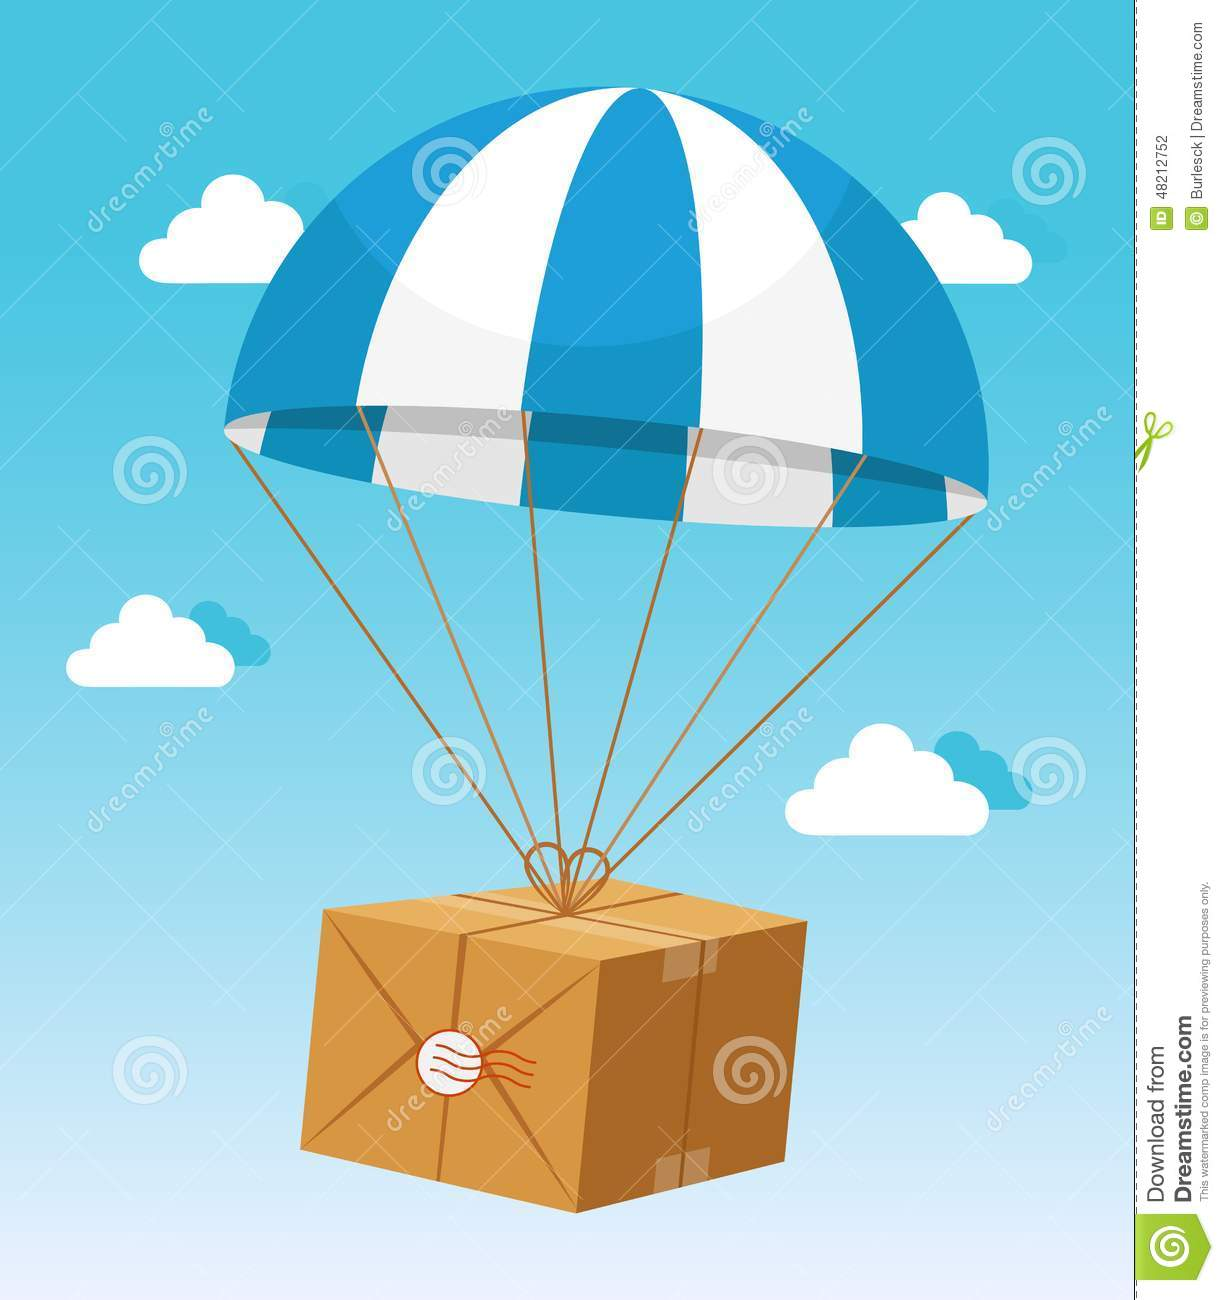 Blue And White Parachute Holding Delivery Box Stock Vector ...